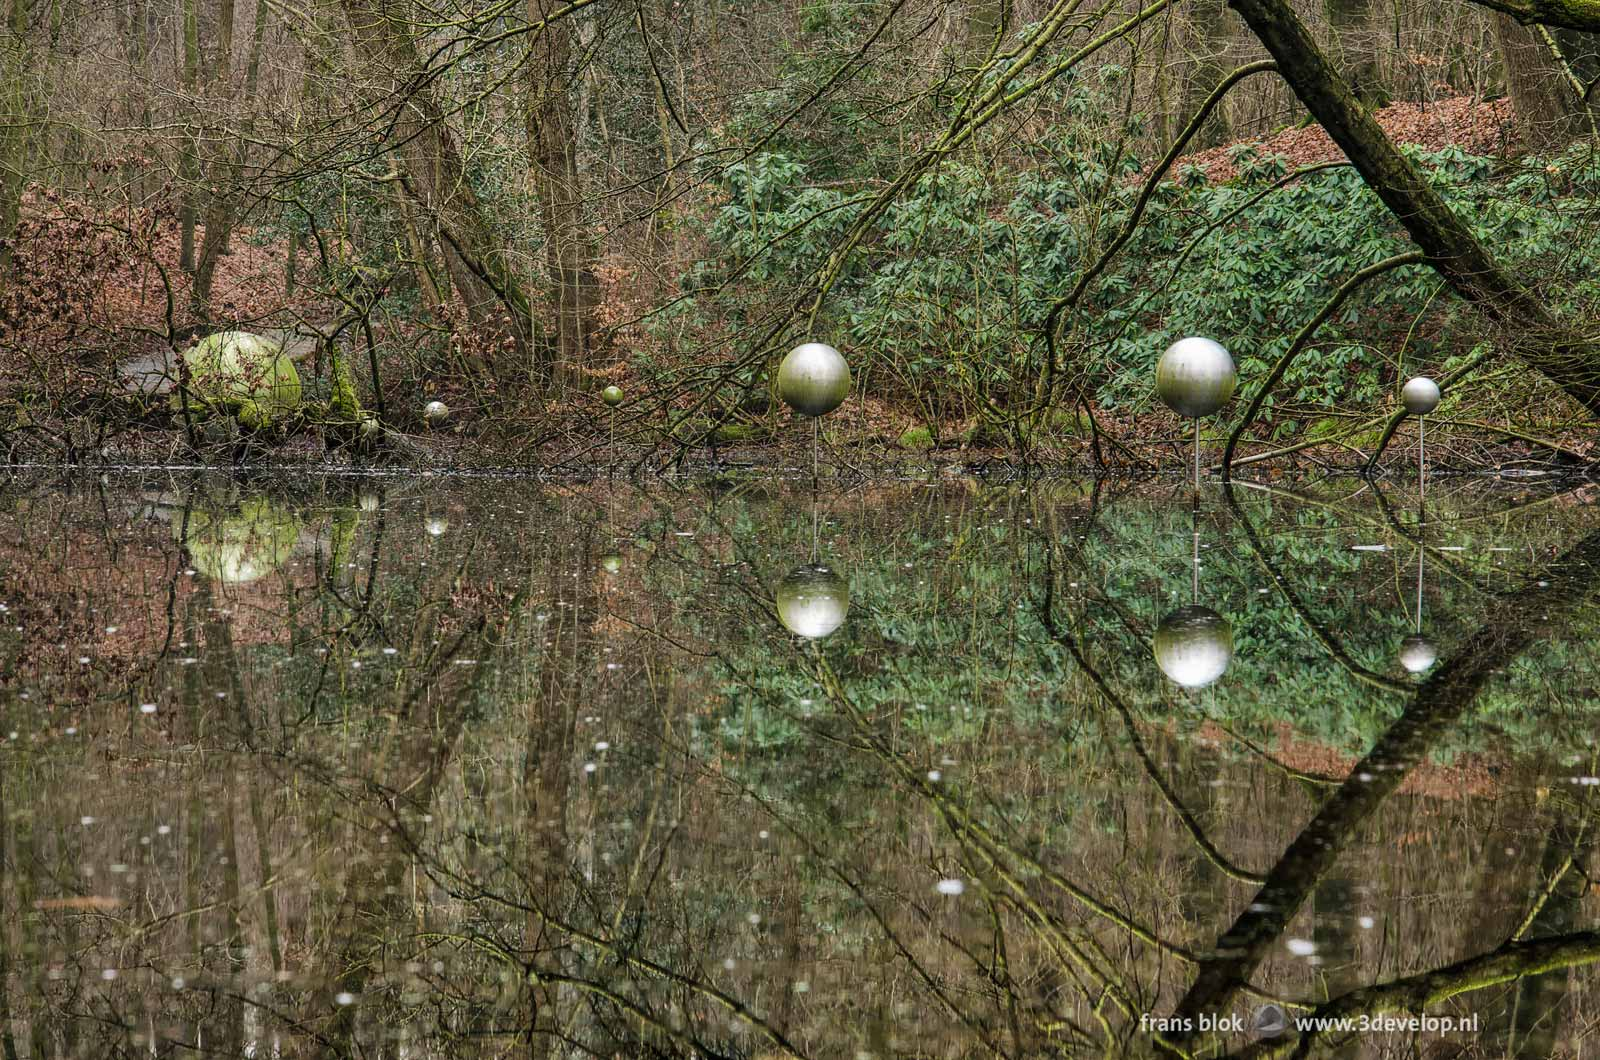 Sculpture Skies Captured by Henrietta Lehtonen also known as the Forest Planetarium in the Cold Pond in Park Sonsbeek in Arnhem, the Netherlands